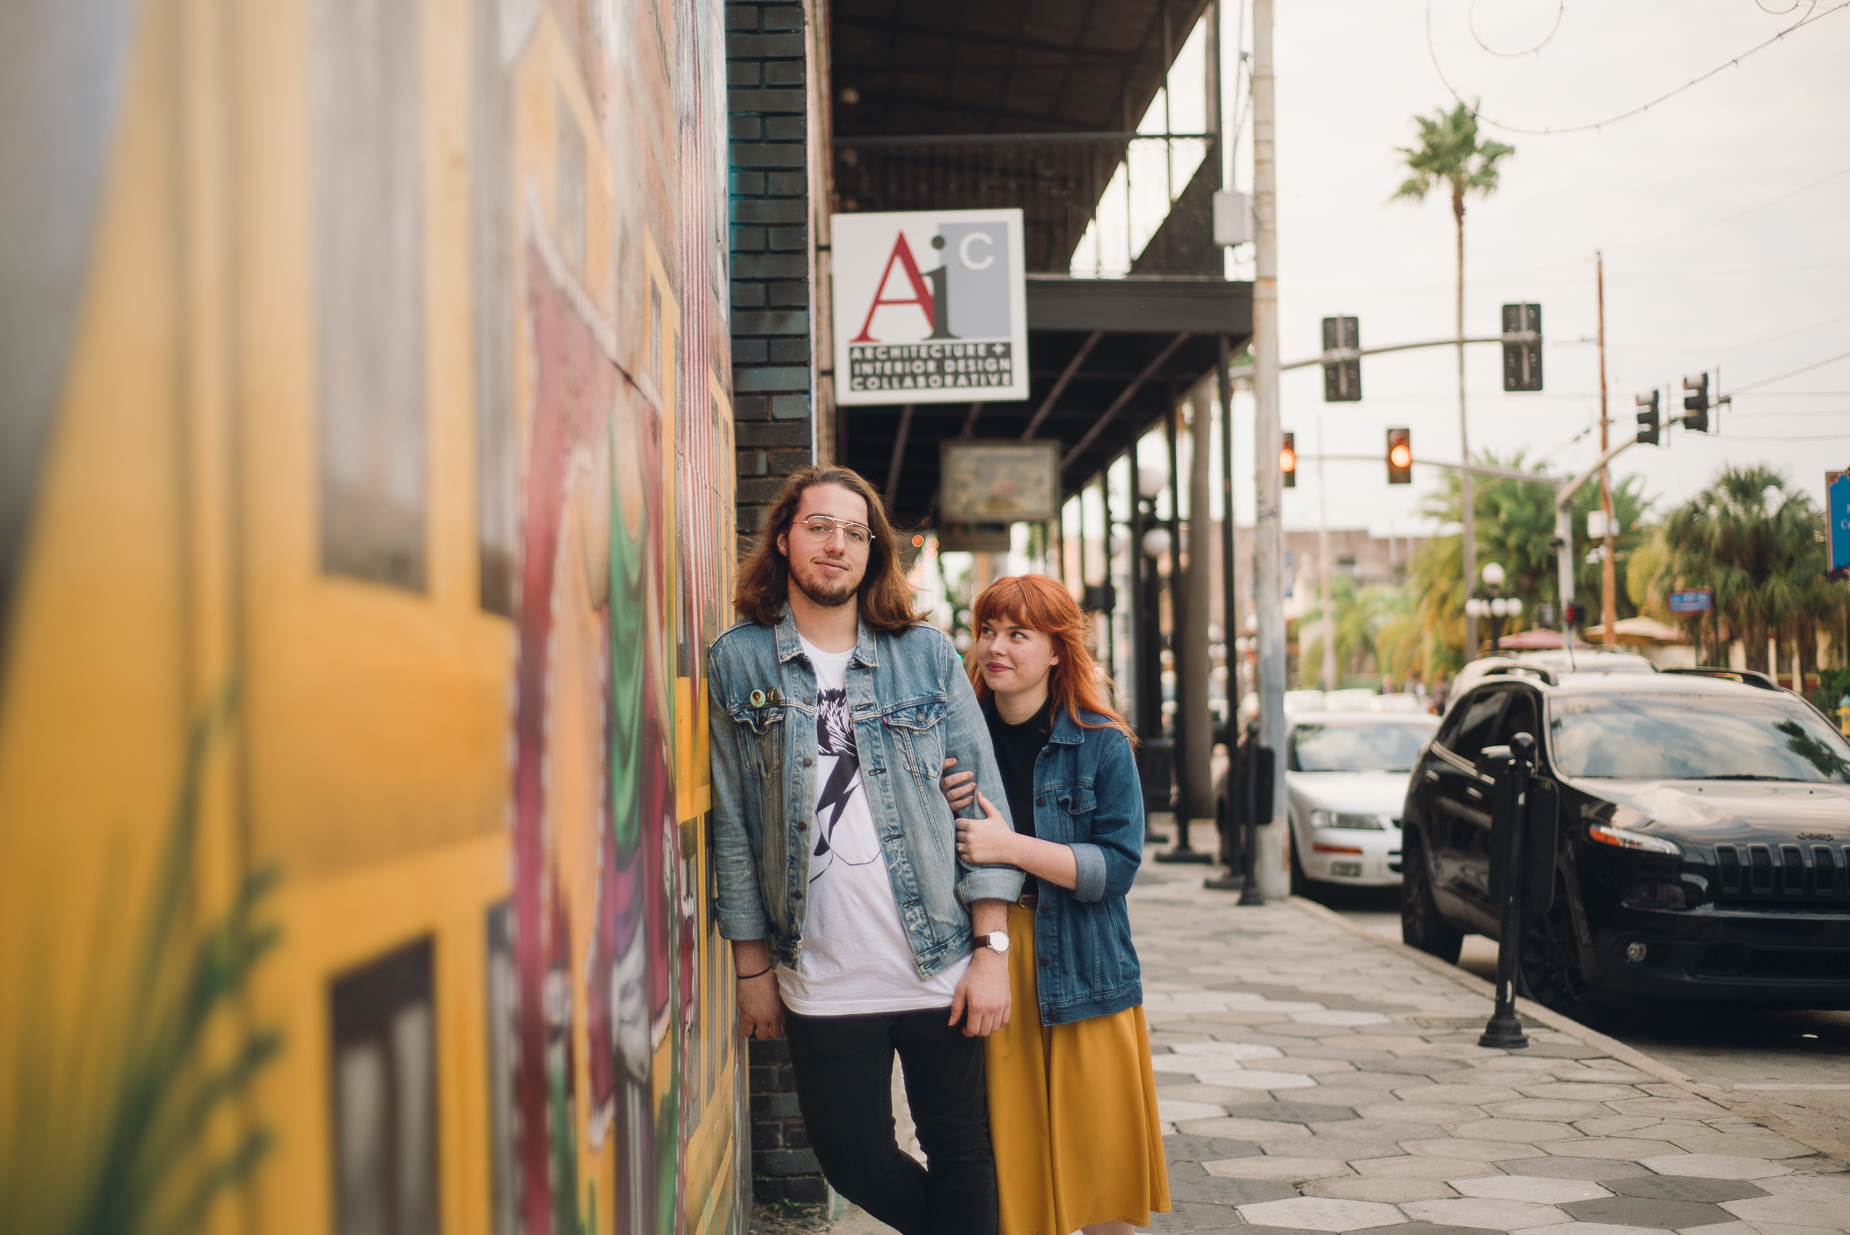 Ybor_Tampa_Engagement Session (18 of 42).jpg